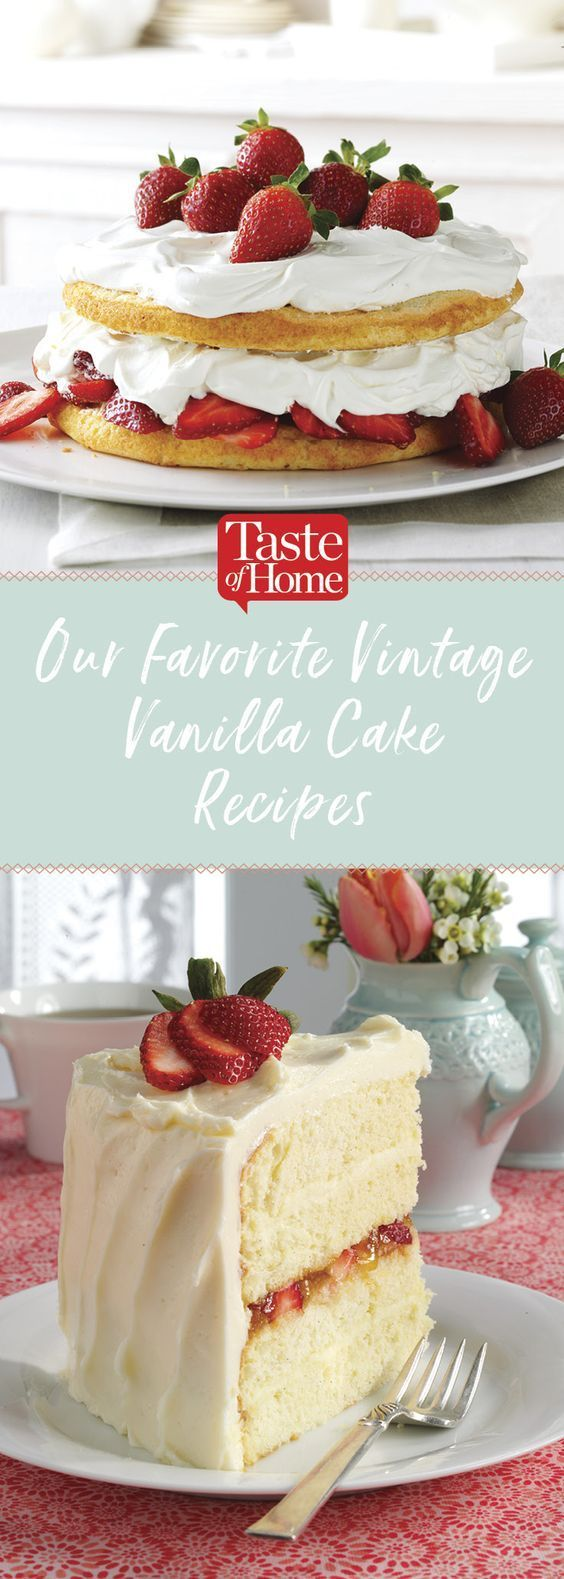 Our Favorite Vintage Vanilla Cake Recipes